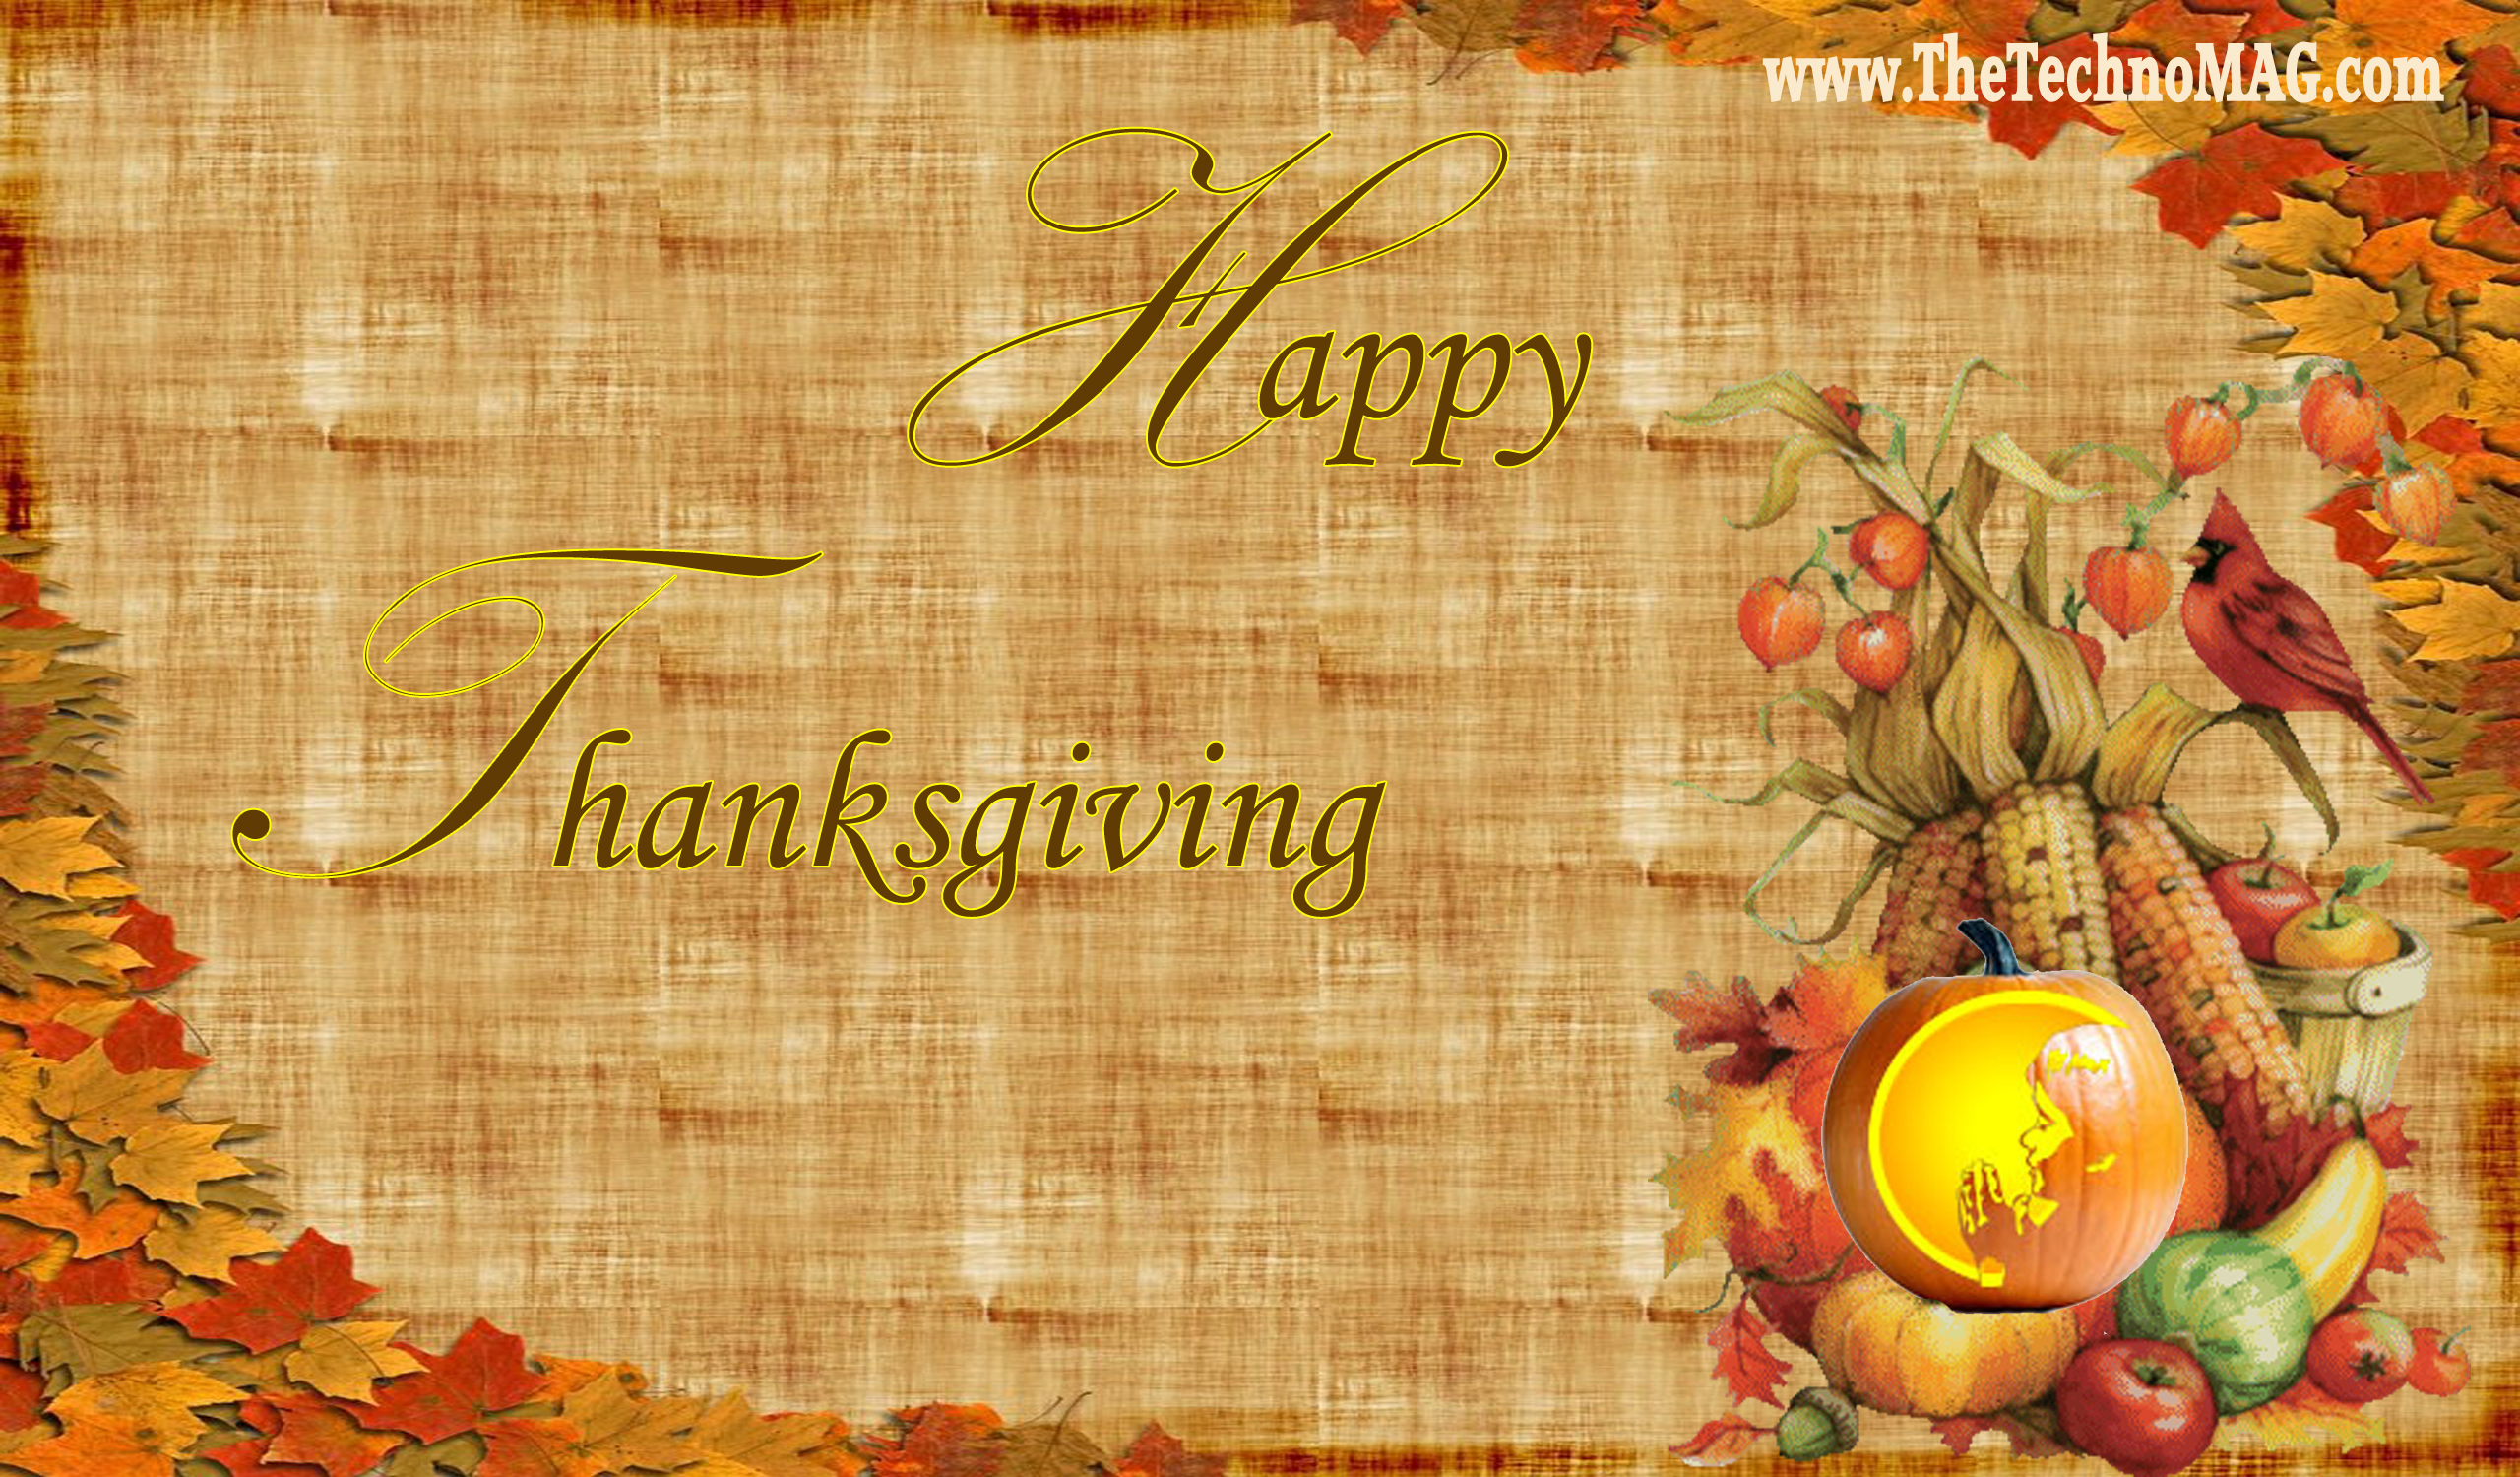 Happy Thanksgiving Wallpaper Backgrounds 2560x1500